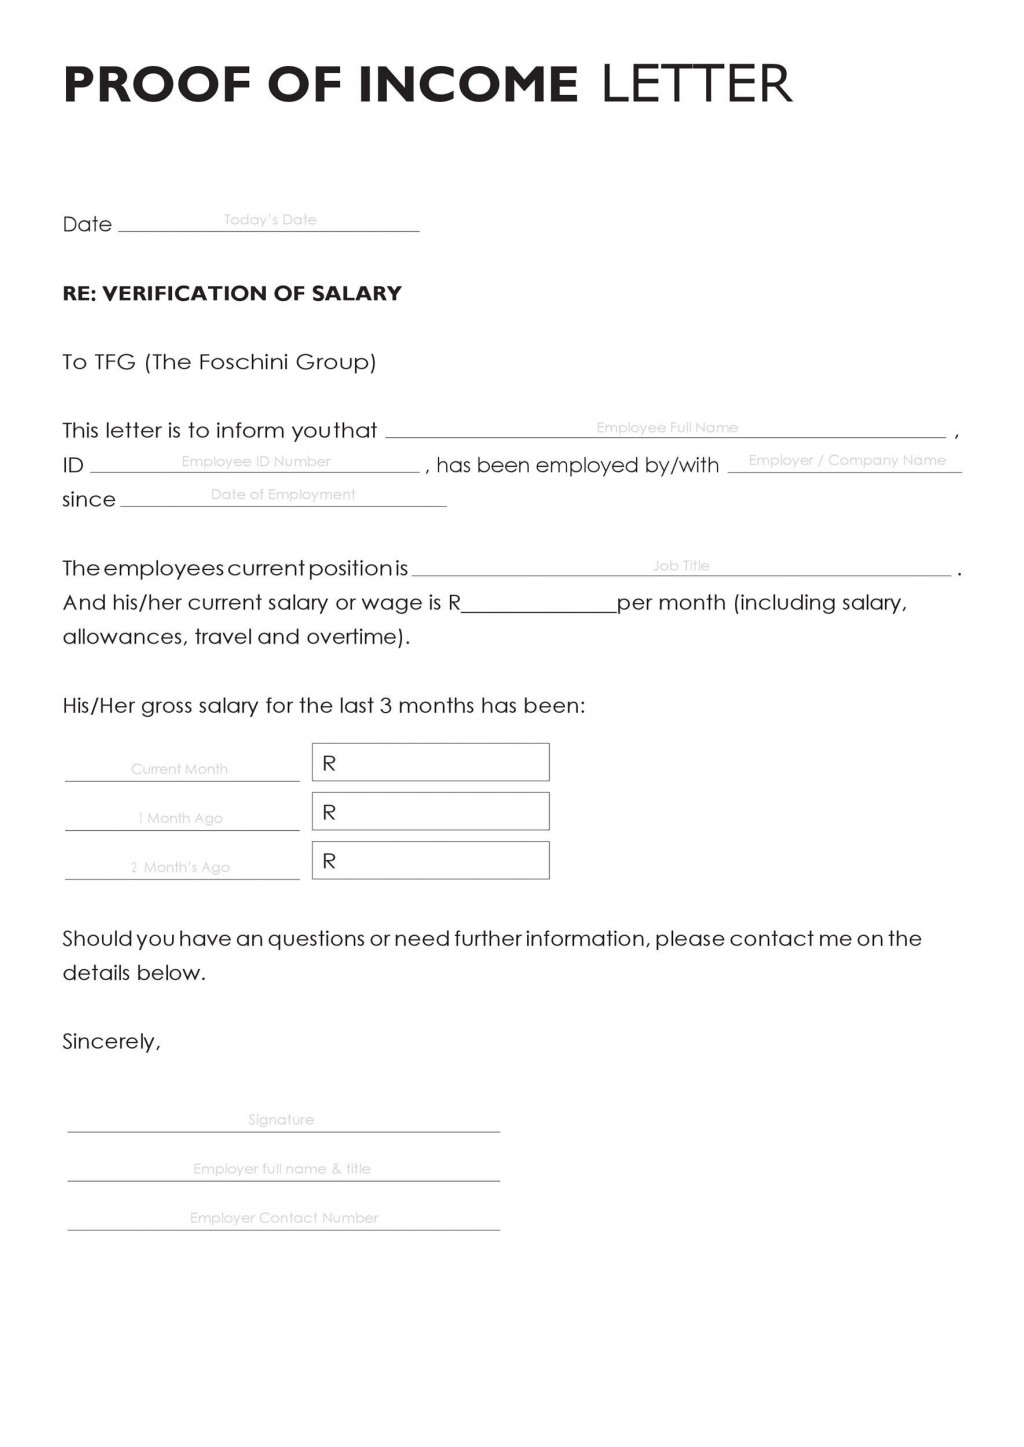 003 Archaicawful Free Income Verification Form Template High Def Large